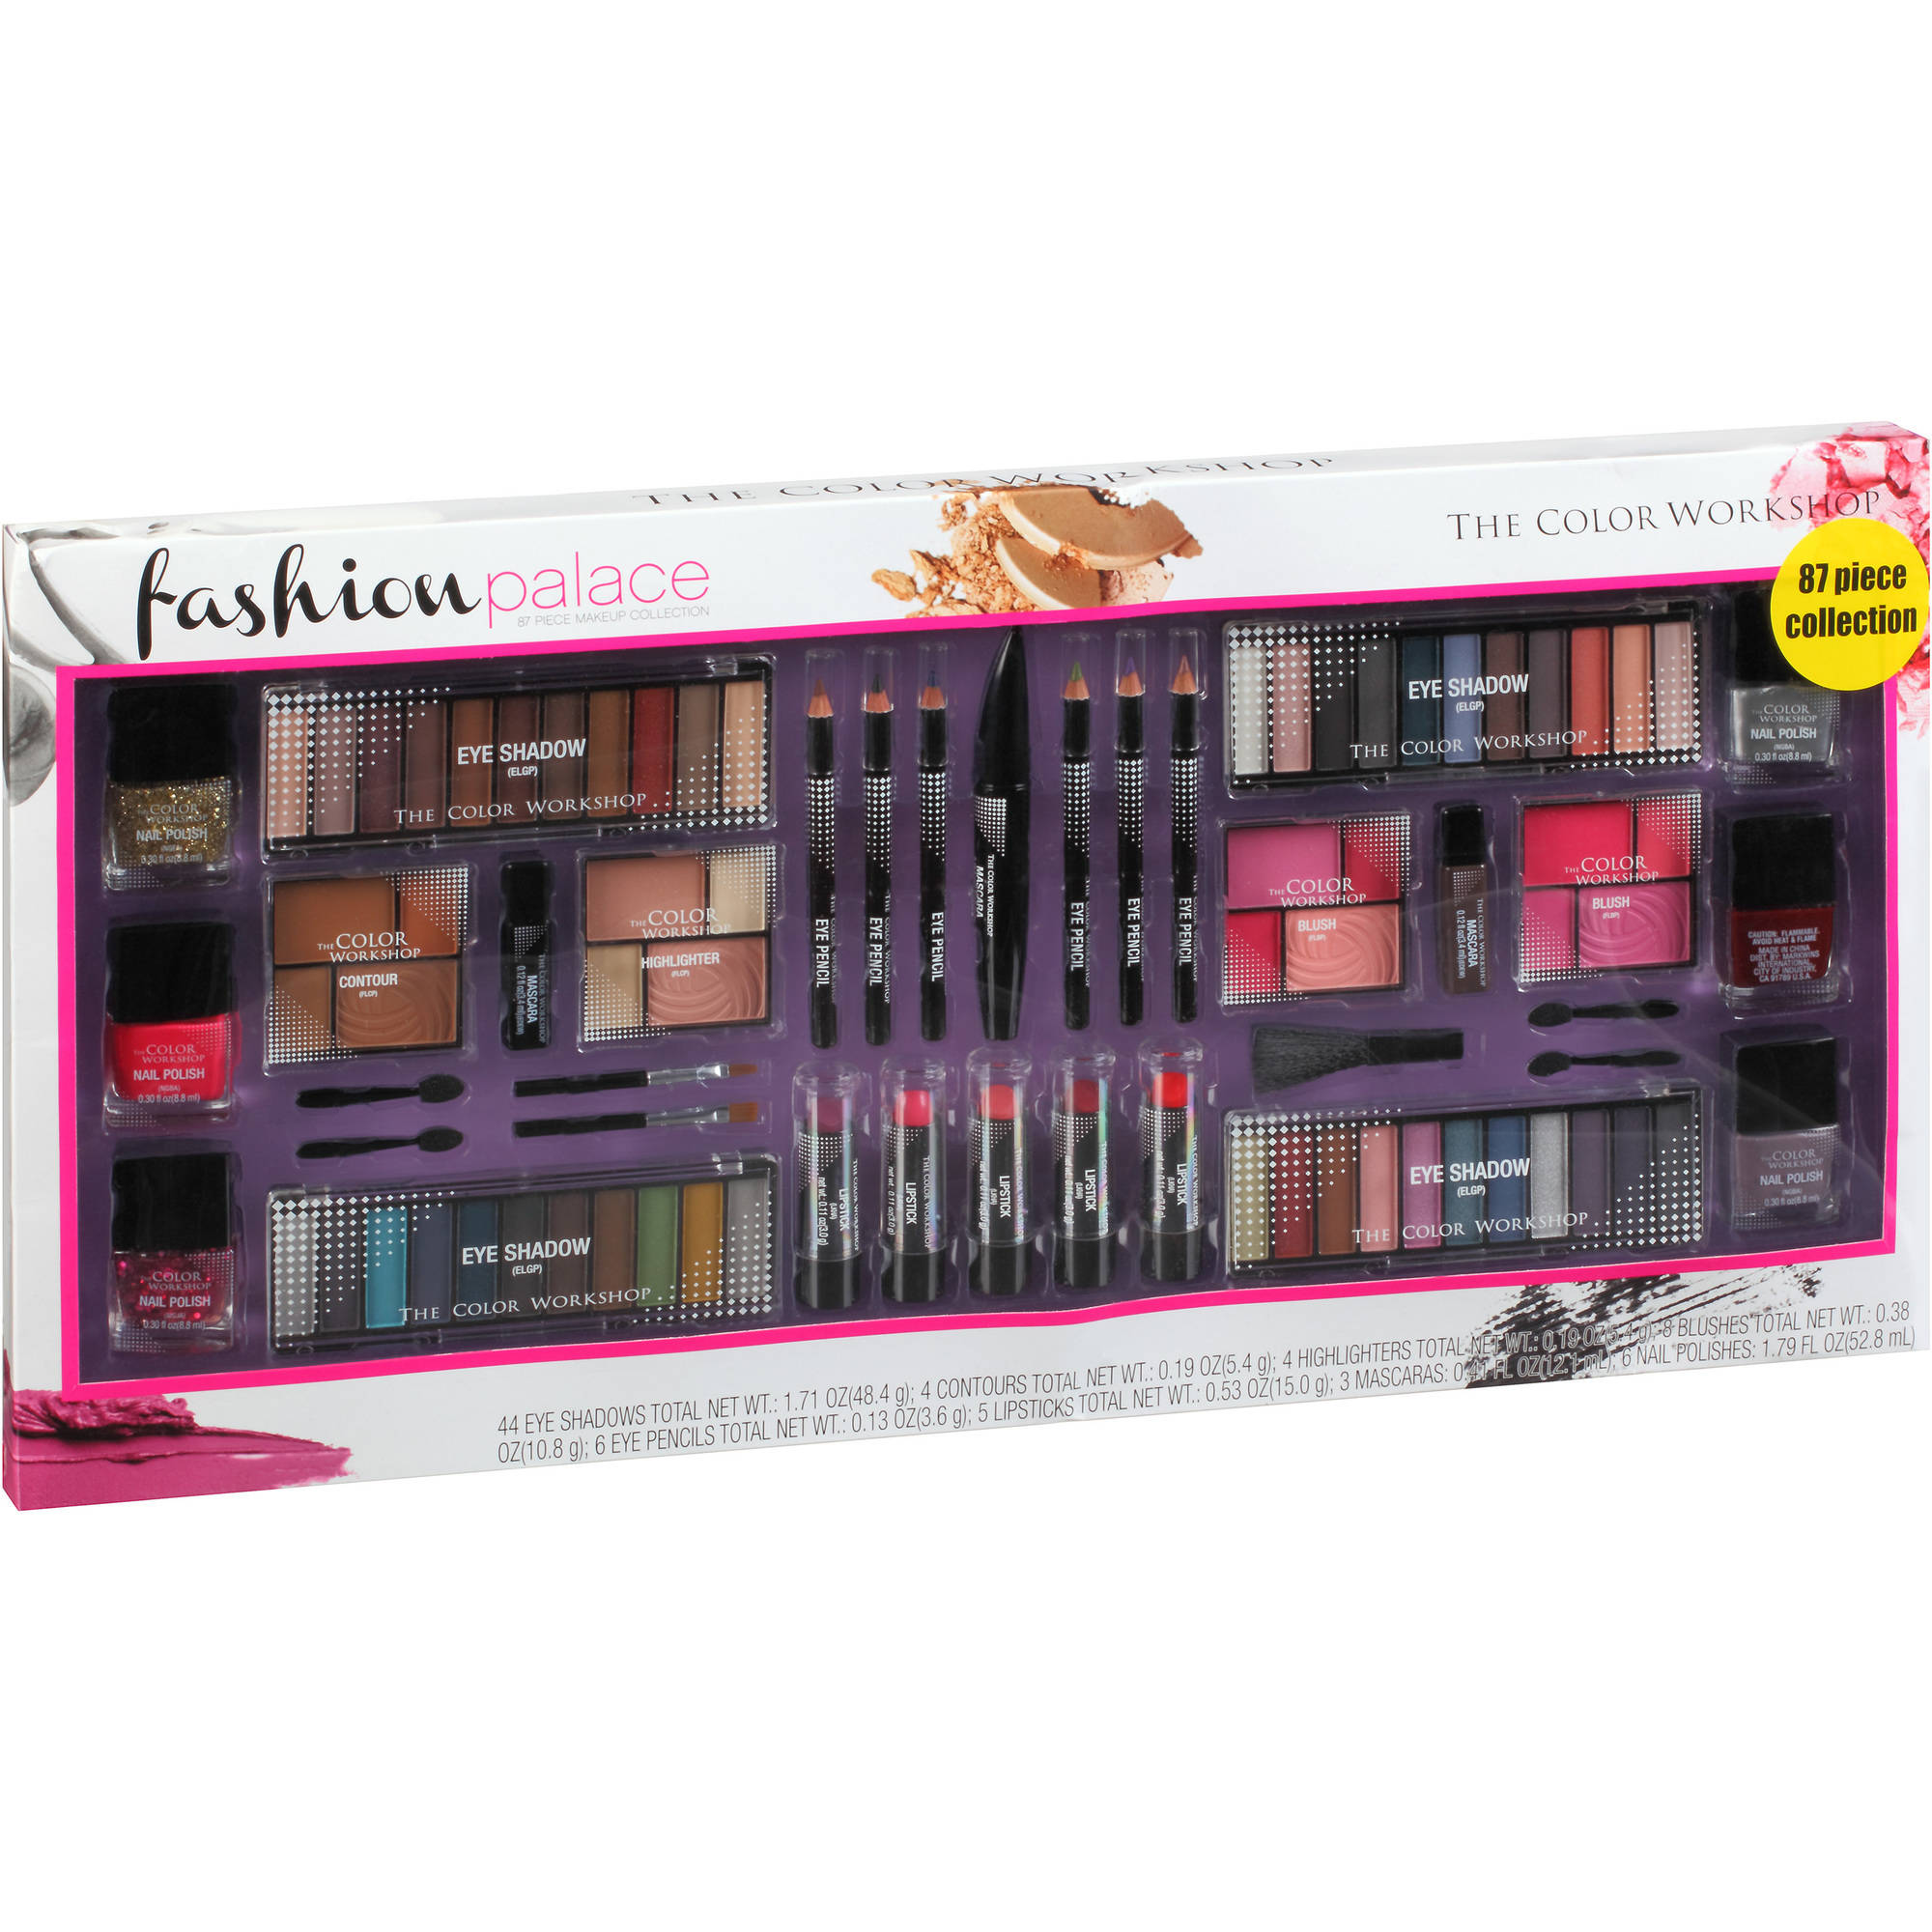 The Color Workshop Fashion Palace Makeup Collection, 87 pc